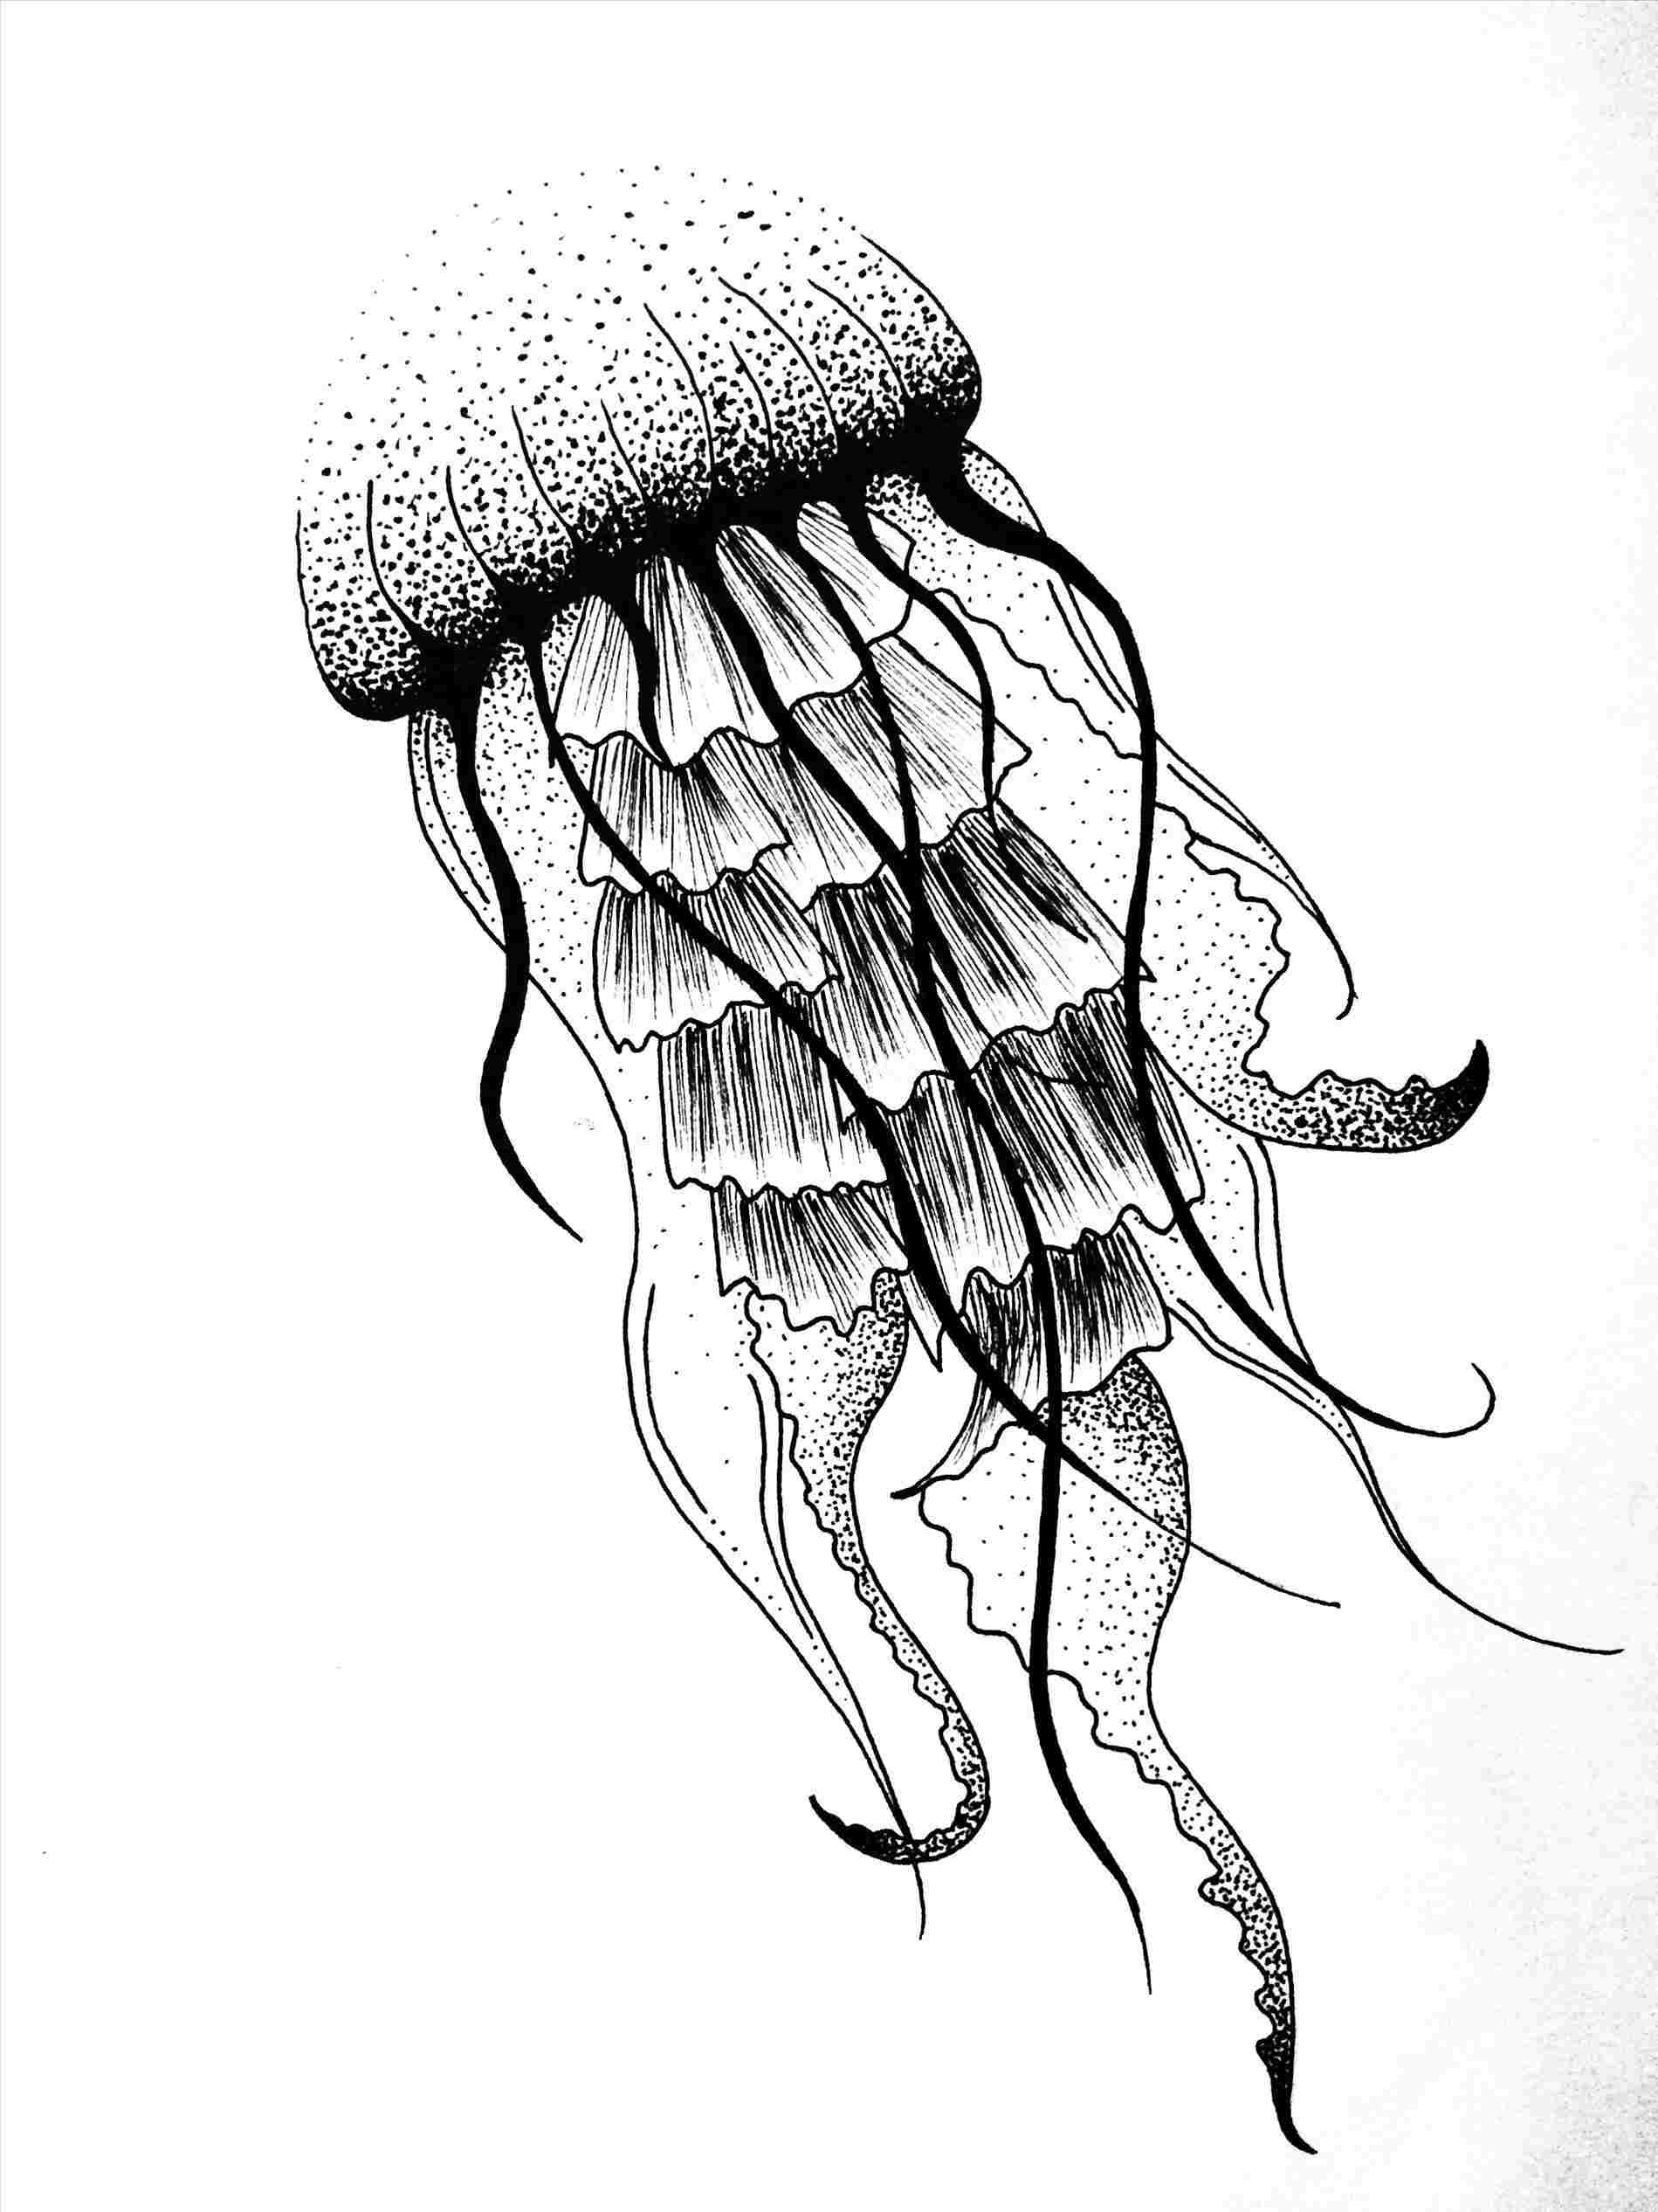 Jellyfish Drawing For Kids | Free download on ClipArtMag